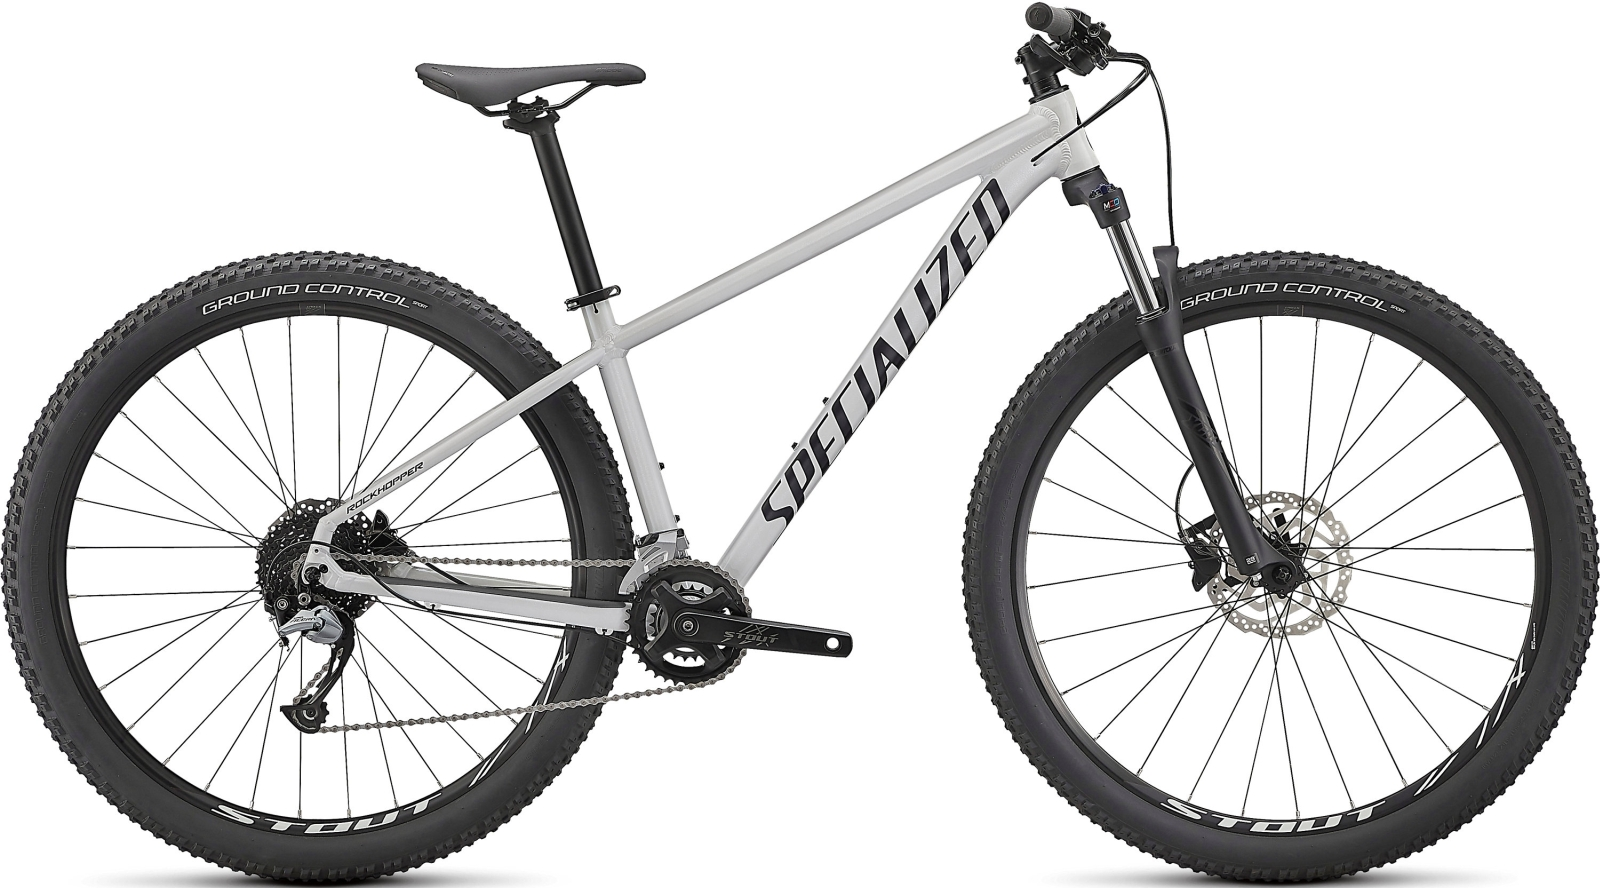 Specialized Roockhopper Comp 2X 29 - Gloss Metallic White Silver/Satin Black XL